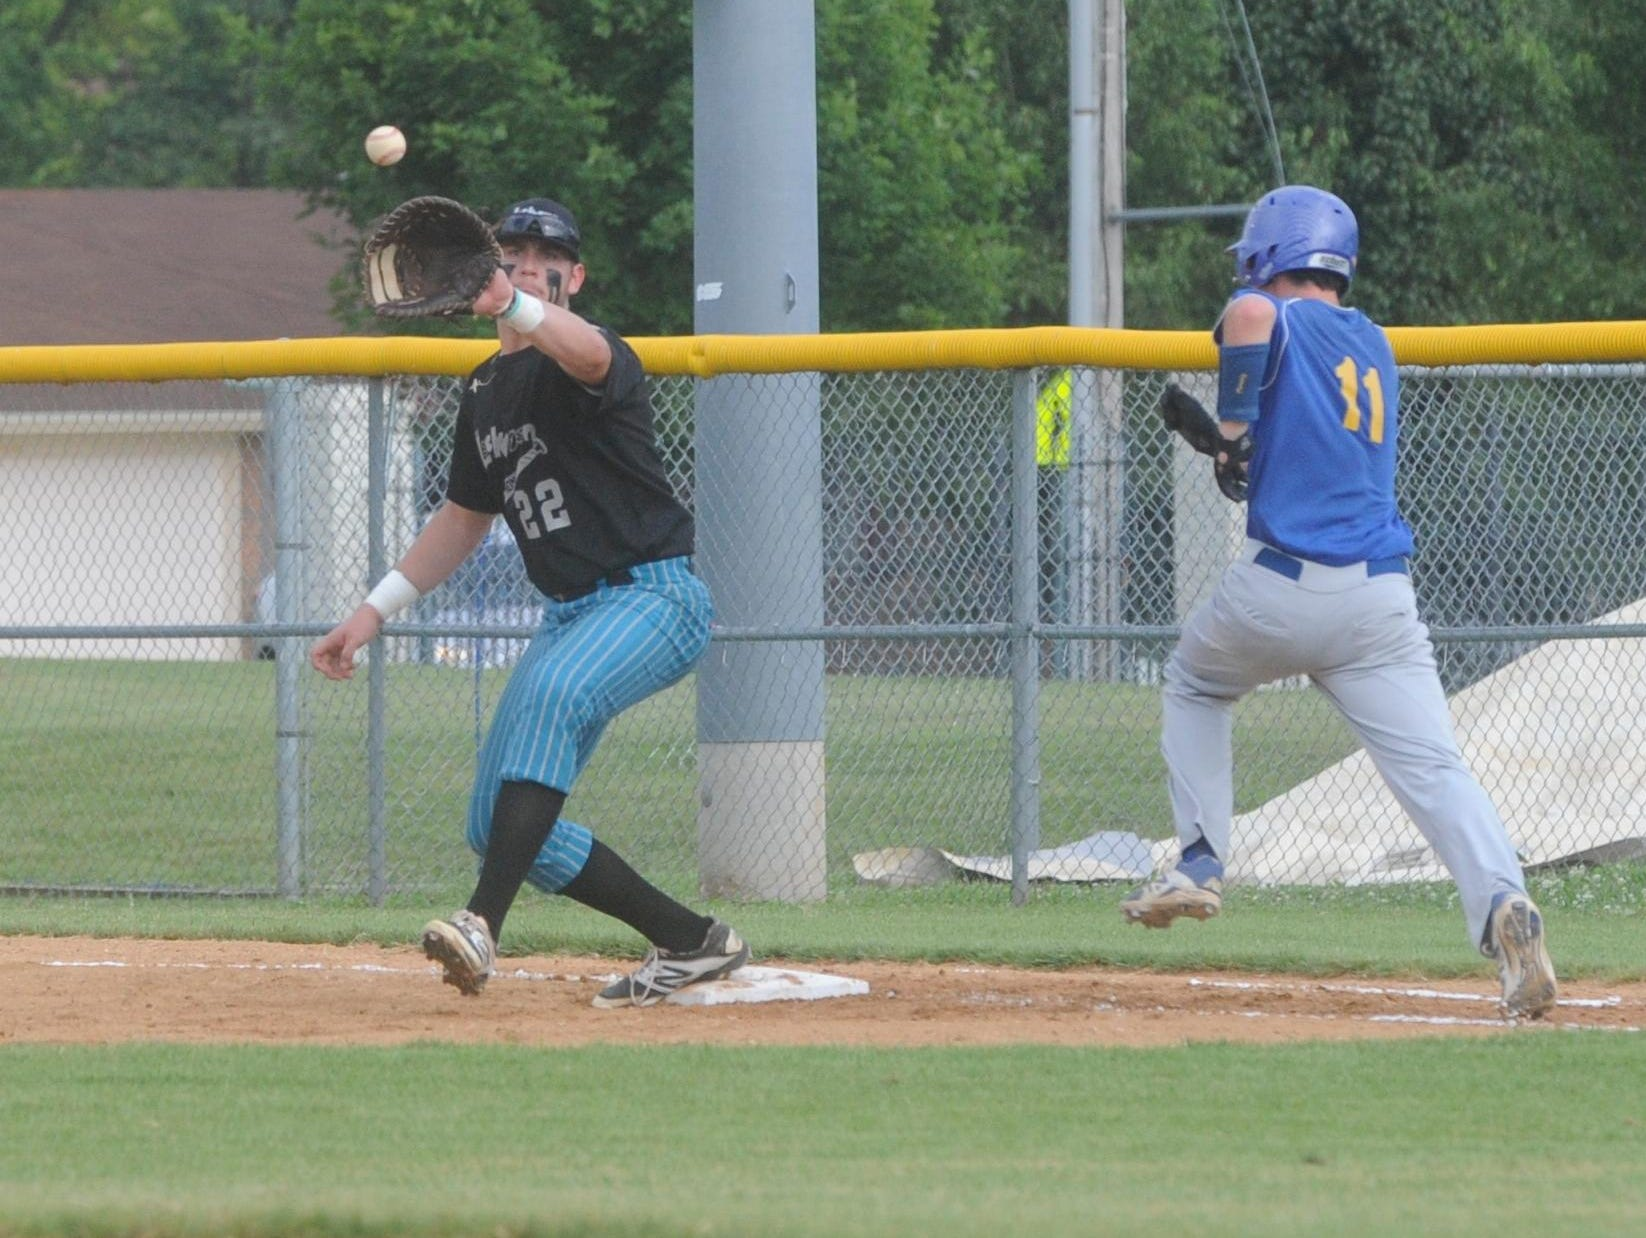 Lockeroom first baseman Sky-Lar Culver receives a throw during a game earlier this season at Cooper Park. Culver will play college baseball at the University of Central Arkansas in Conway.